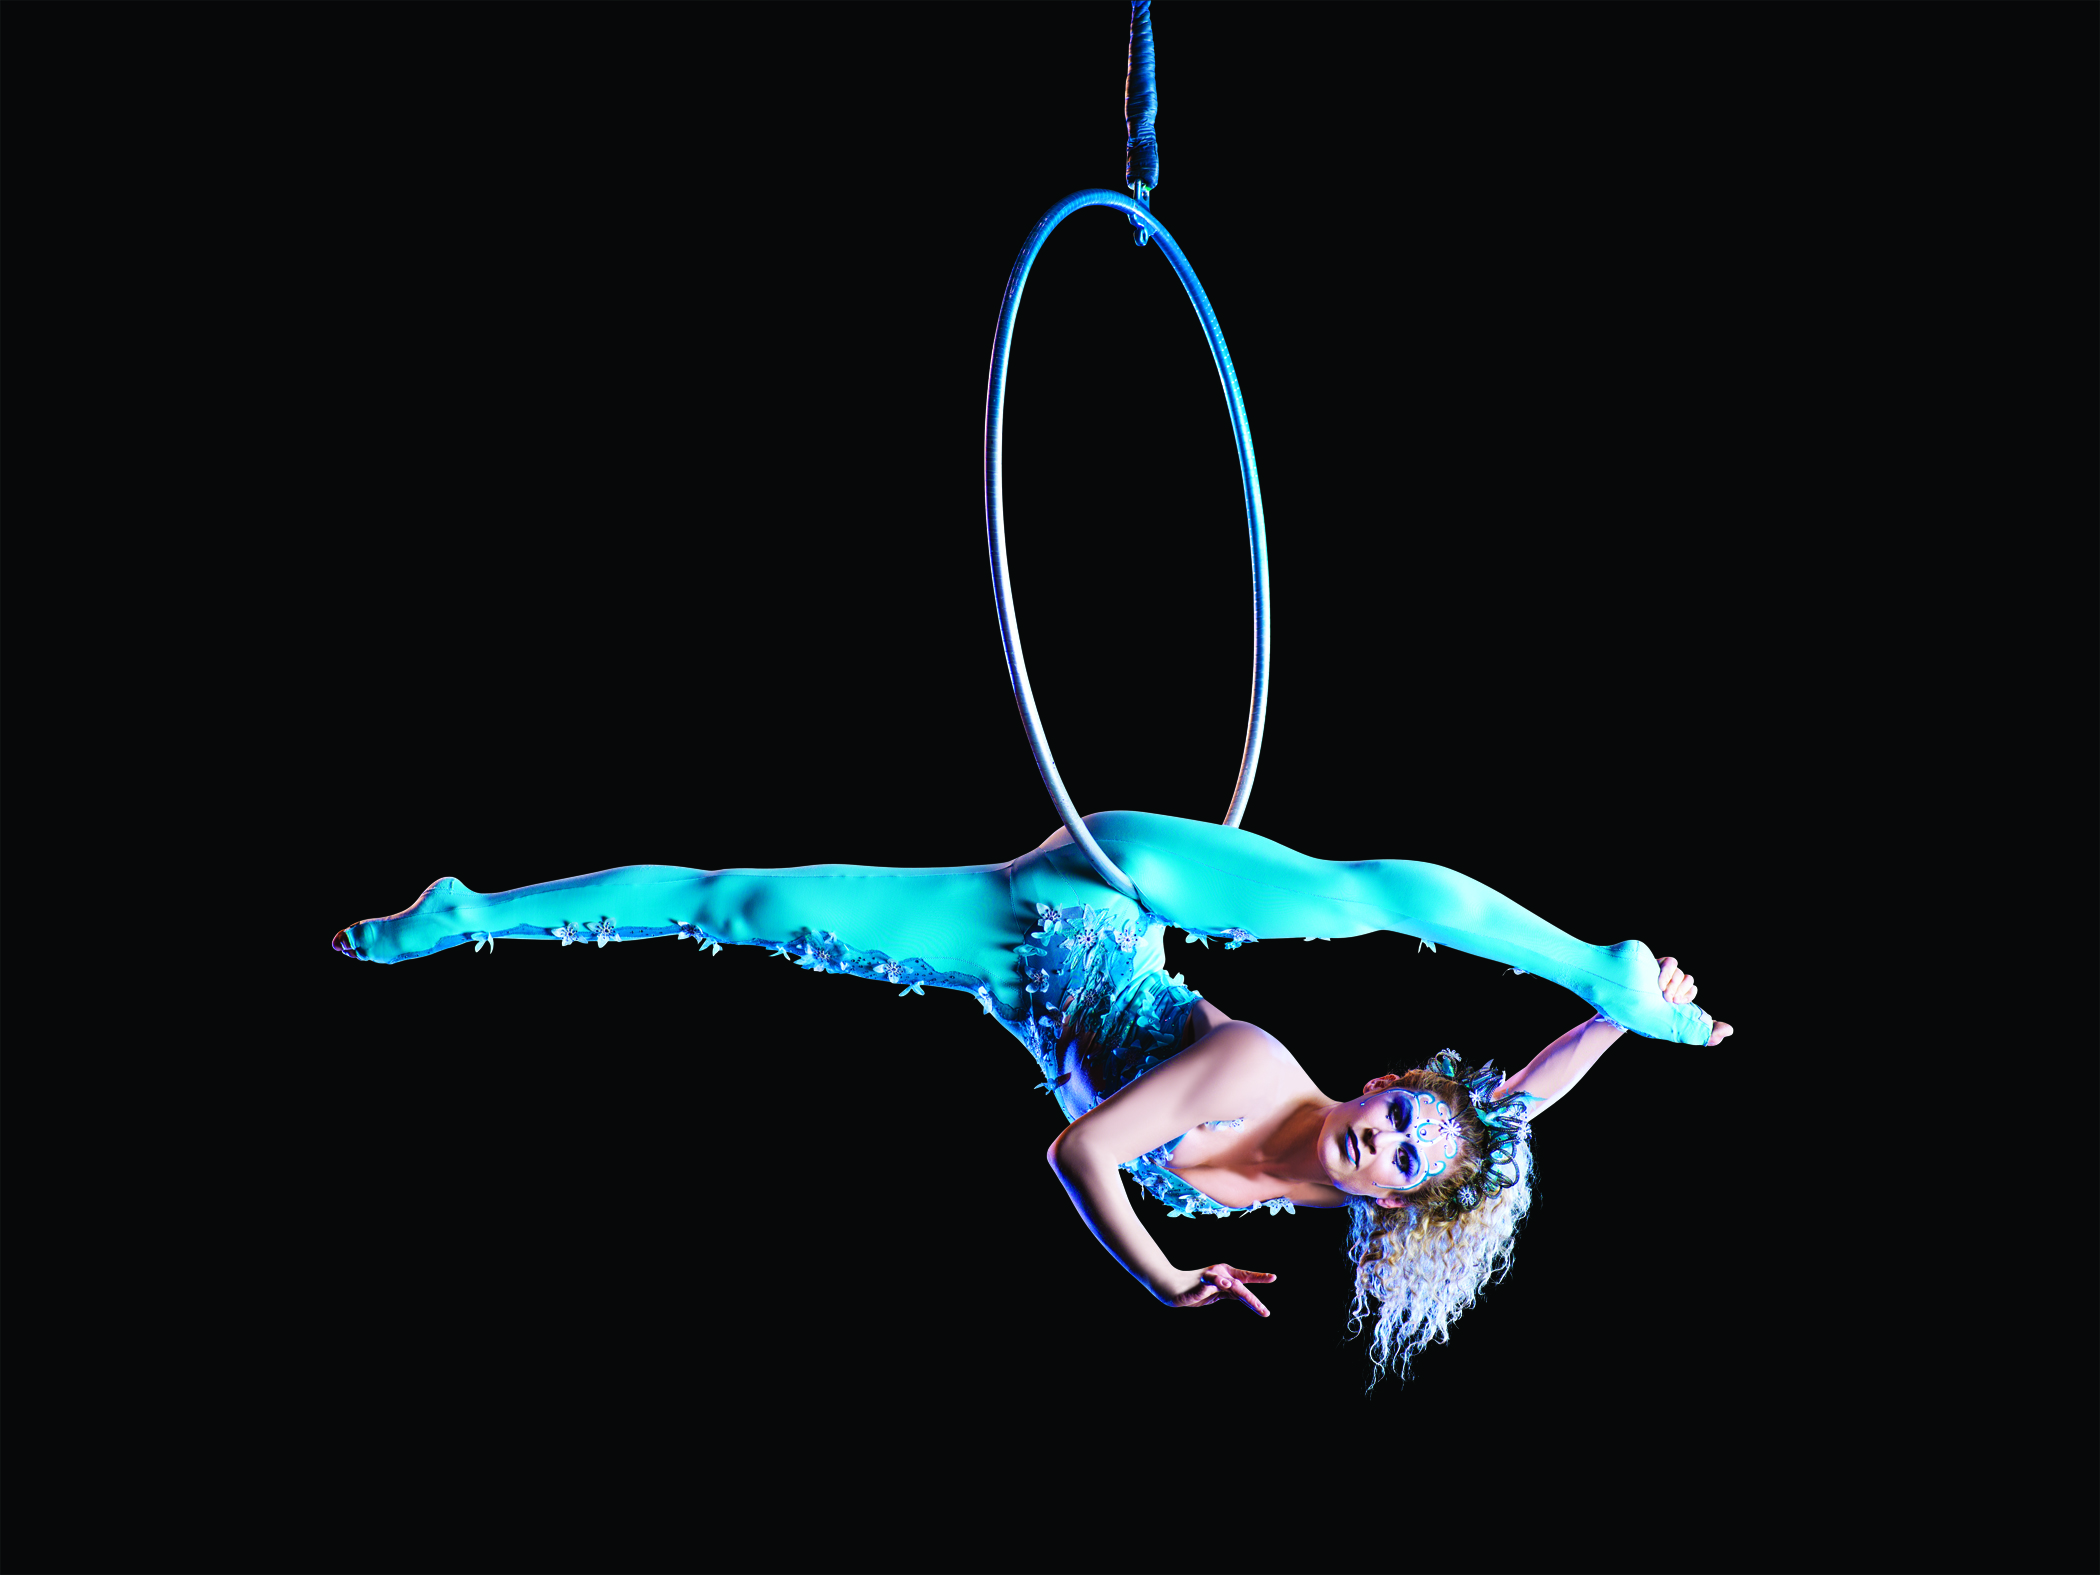 An acrobat performs forCirque du Soleil, suspended on a cerceau. When gymnasts retire from competition, often at a young age, Cirque offers a continuation of a passion. Image supplied by Cirque du Soleil.